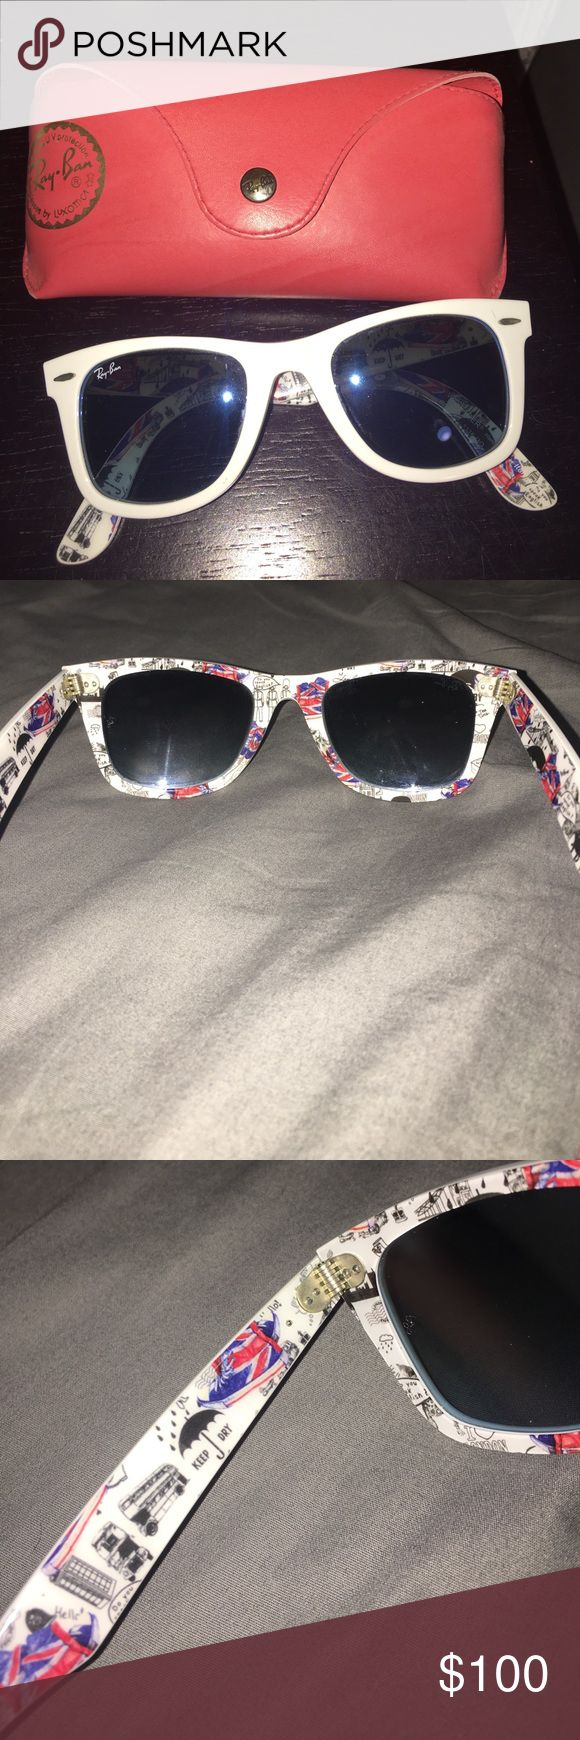 """Ray Ban Wayfarer sunglasses Hardly worn white ray ban wayfarer, these are the """"London edition"""" with blue lenses. They're super cute for summer and they are in great shape! No scratches on the lens or knicks on the frame Ray-Ban Accessories Sunglasses"""